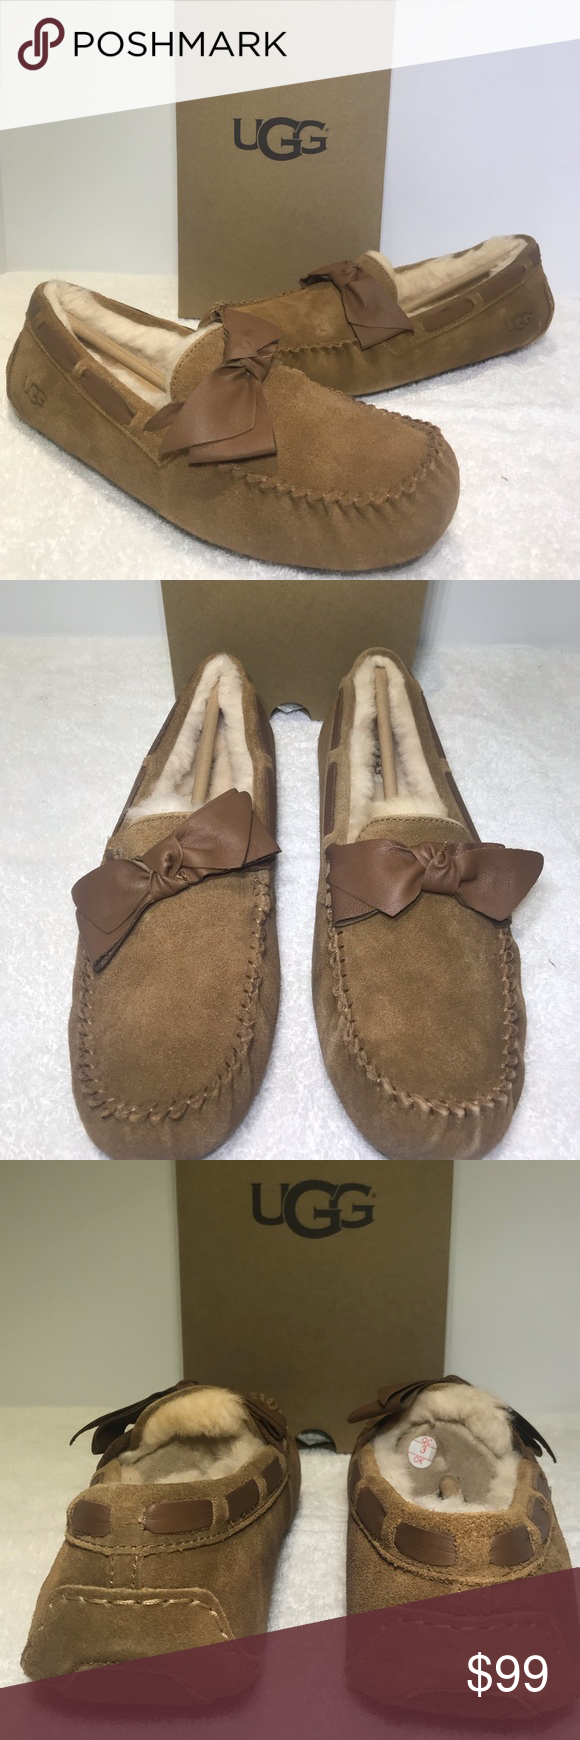 d03c5682e4b UGG Dakota Leather Bow Chestnut Slippers 1020031 UGG Dakota Leather ...